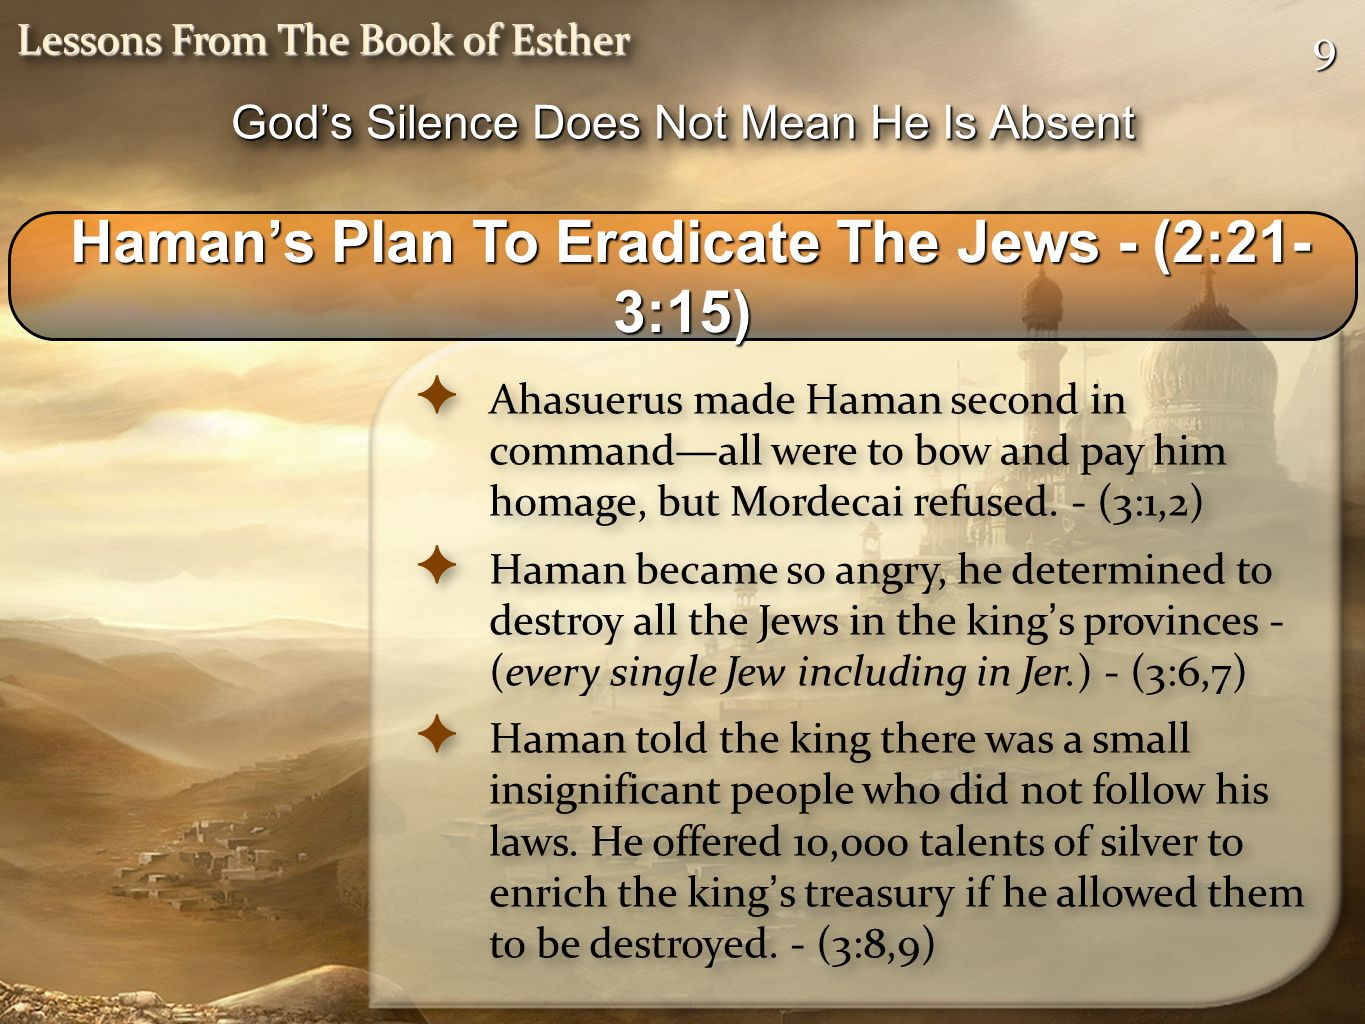 99 Lessons From The Book of Esther ✦ Ahasuerus made Haman second in command—all were to bow and pay him homage, but Mordecai refused.